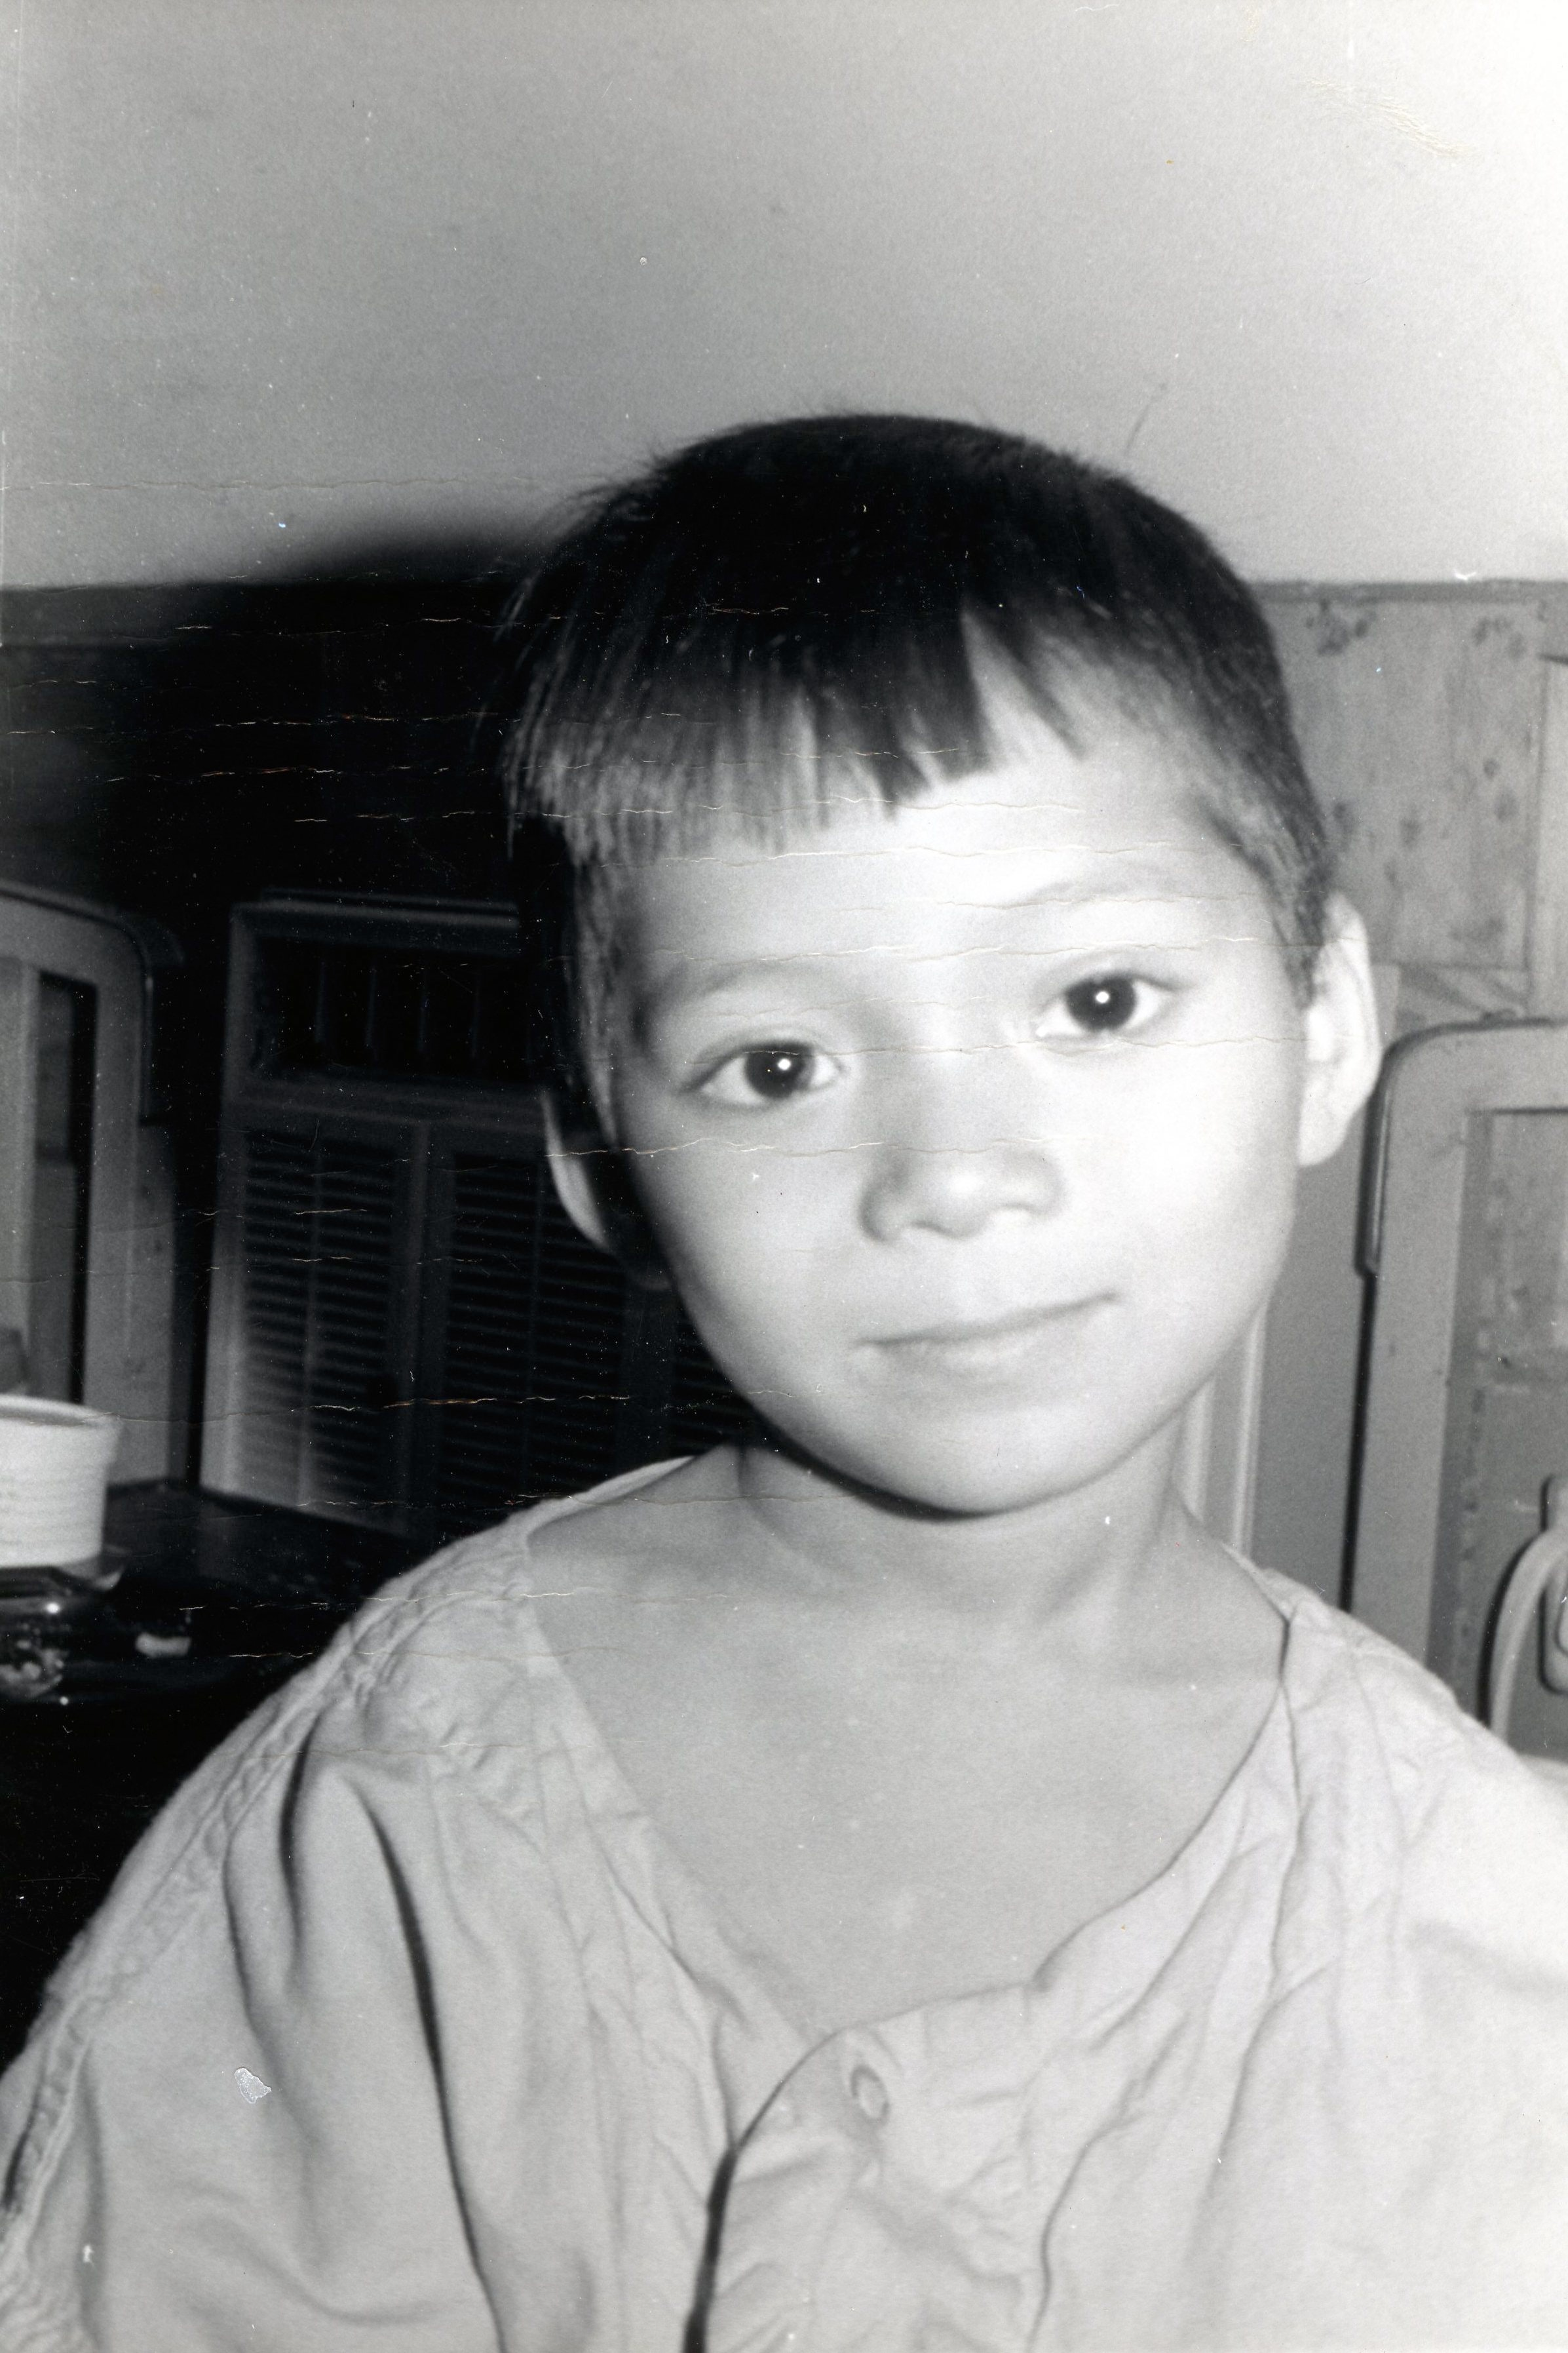 Lisa Abend's father worked as a surgeon during the Vietnam War and operated on the young boy pictured above.